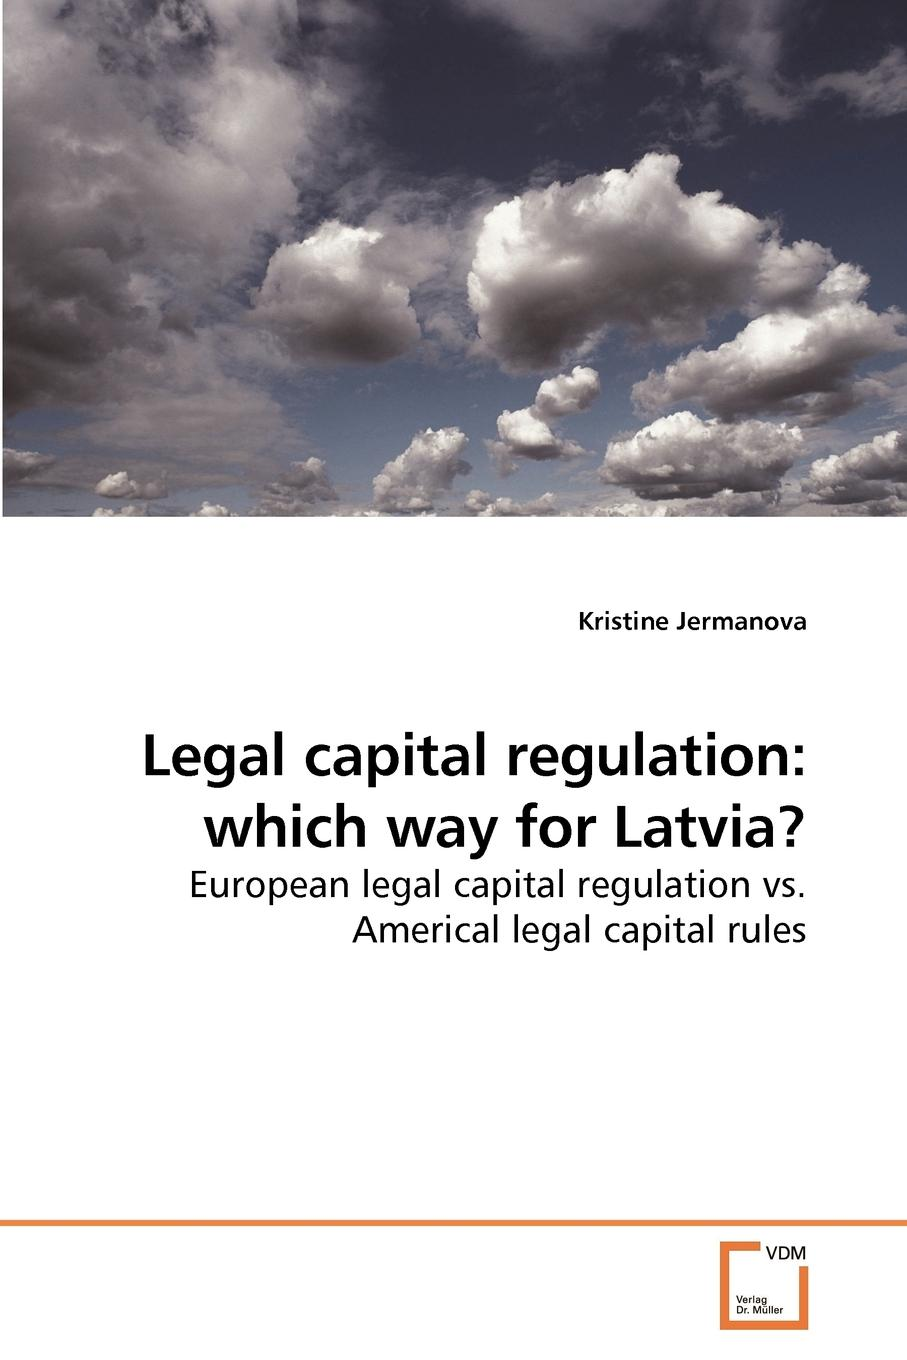 Kristine Jermanova Legal capital regulation. which way for Latvia. legal writings